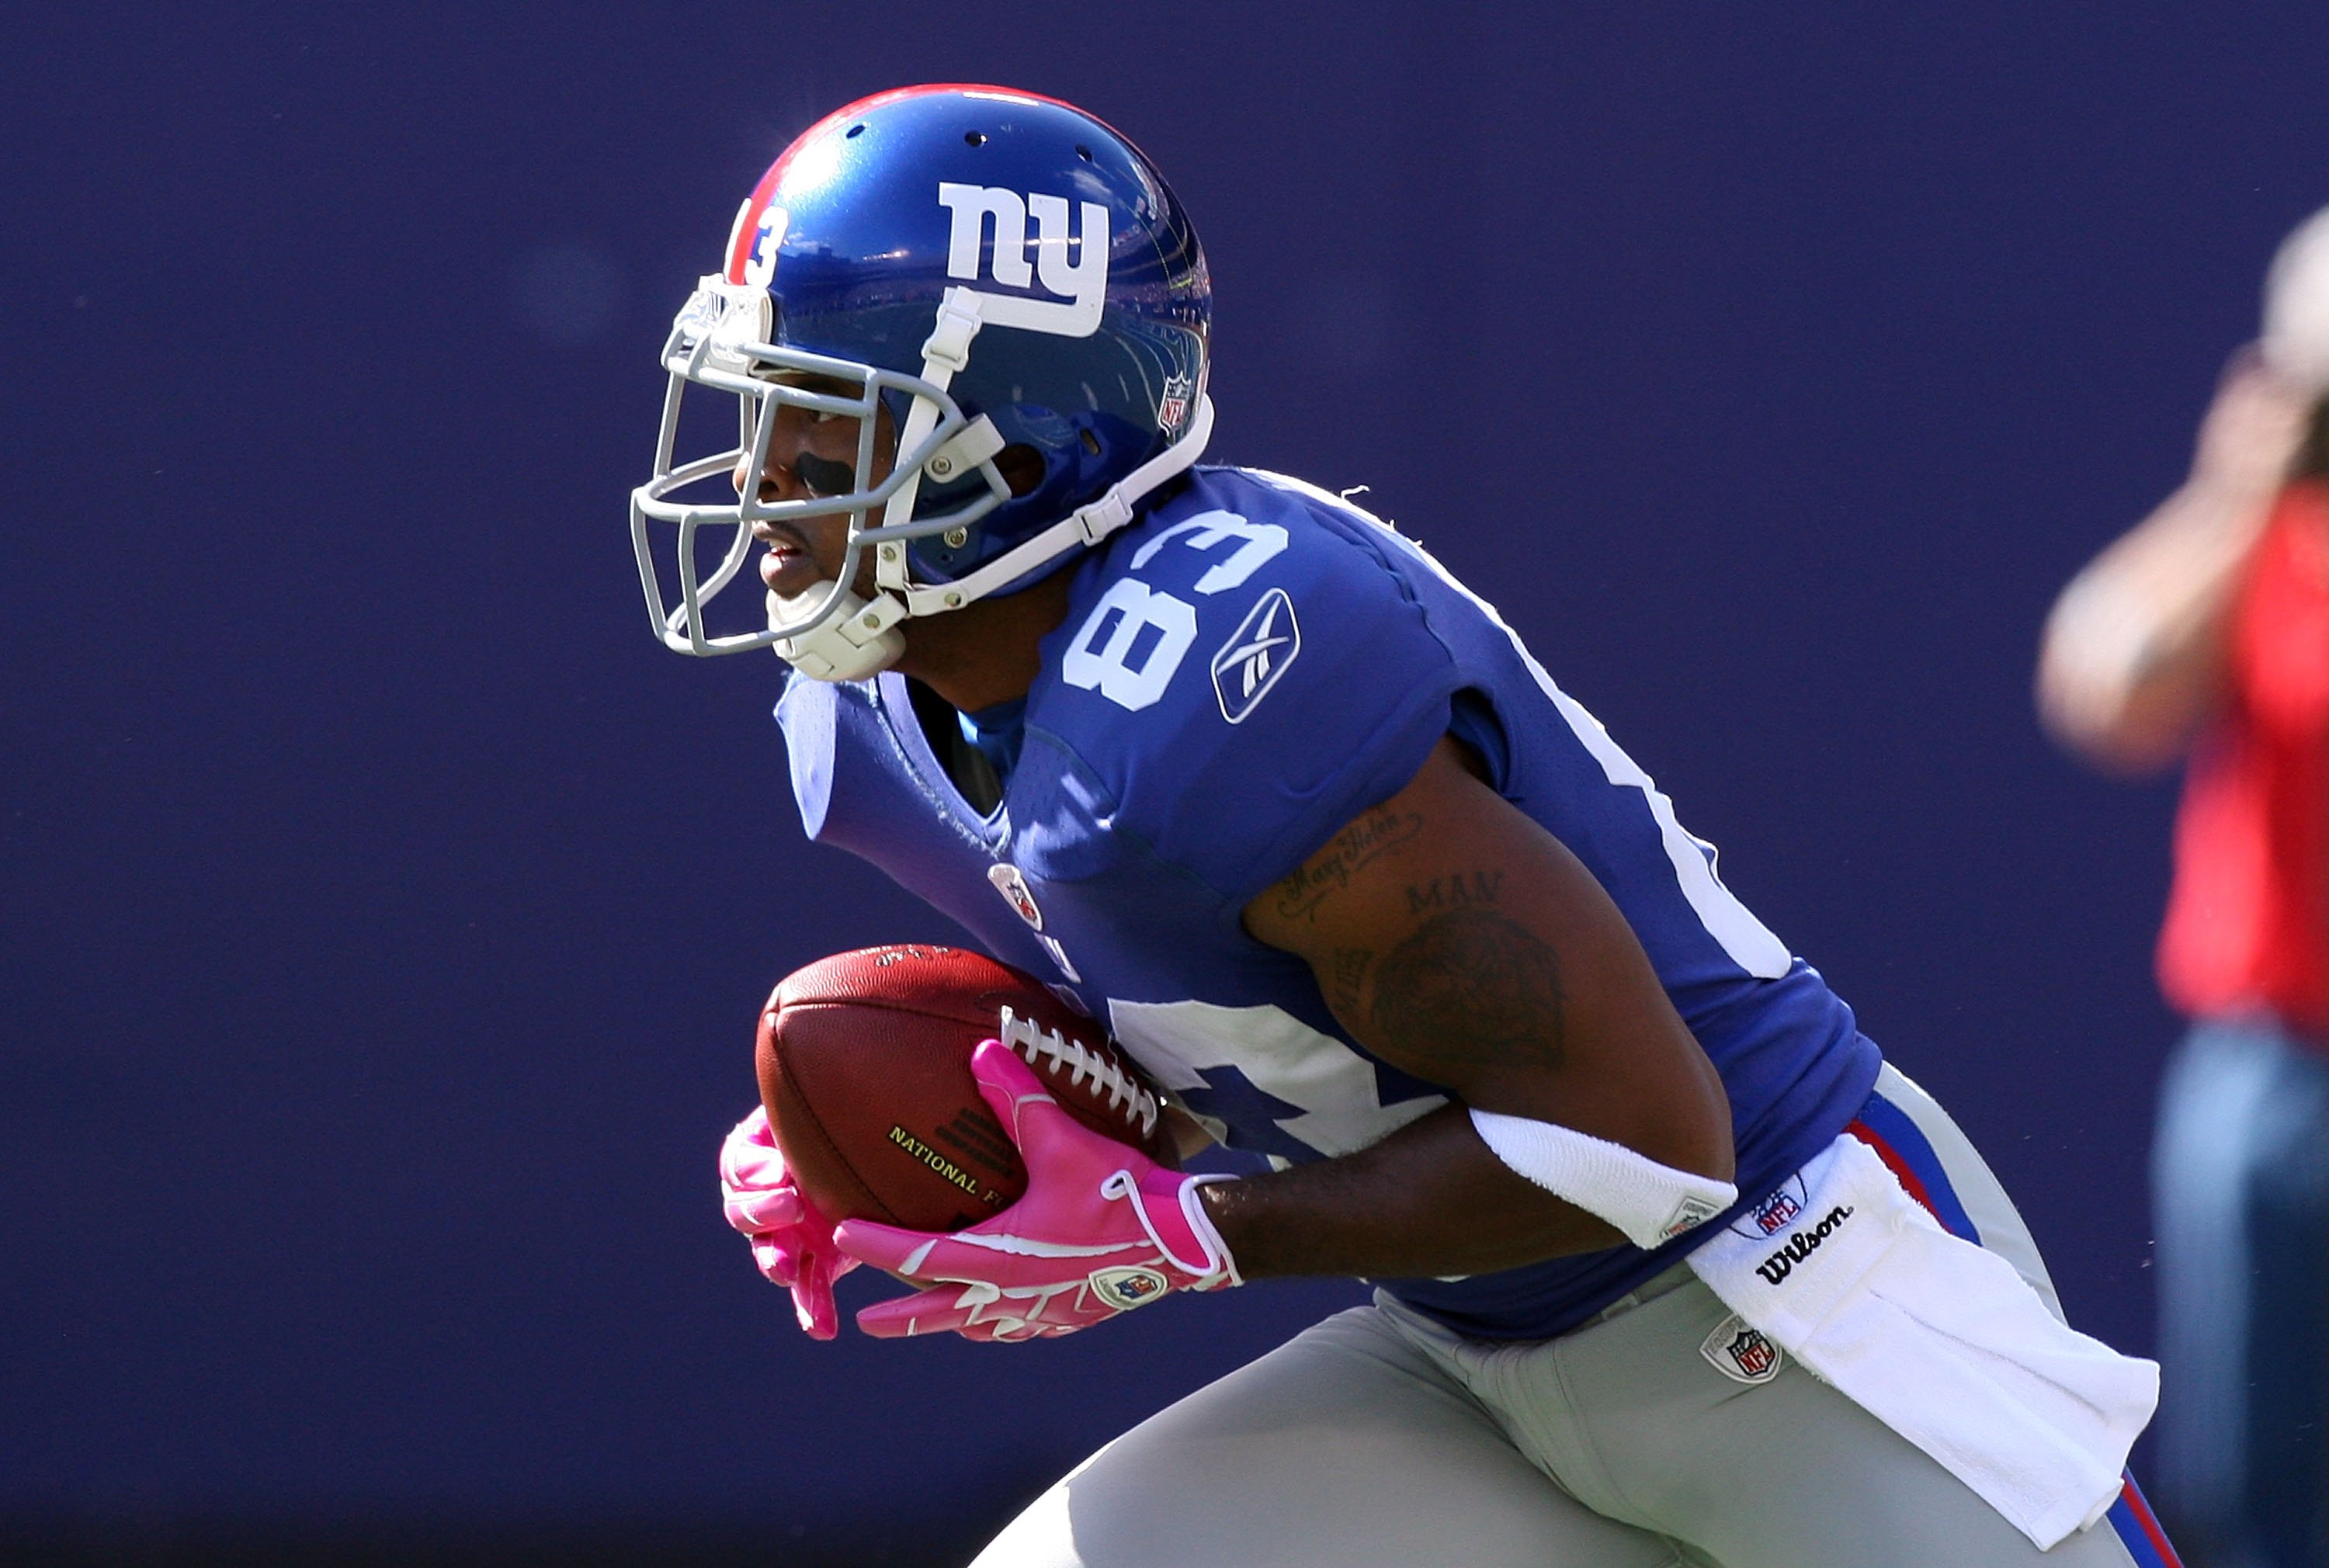 EAST RUTHERFORD, NJ - OCTOBER 11:  Sinorice Moss #83 of the New York Giants runs the ball against the Oakland Raiders on October 11, 2009 at Giants Stadium in East Rutherford, New Jersey. The Giants defeated the Raiders 44-7.  (Photo by Jim McIsaac/Getty